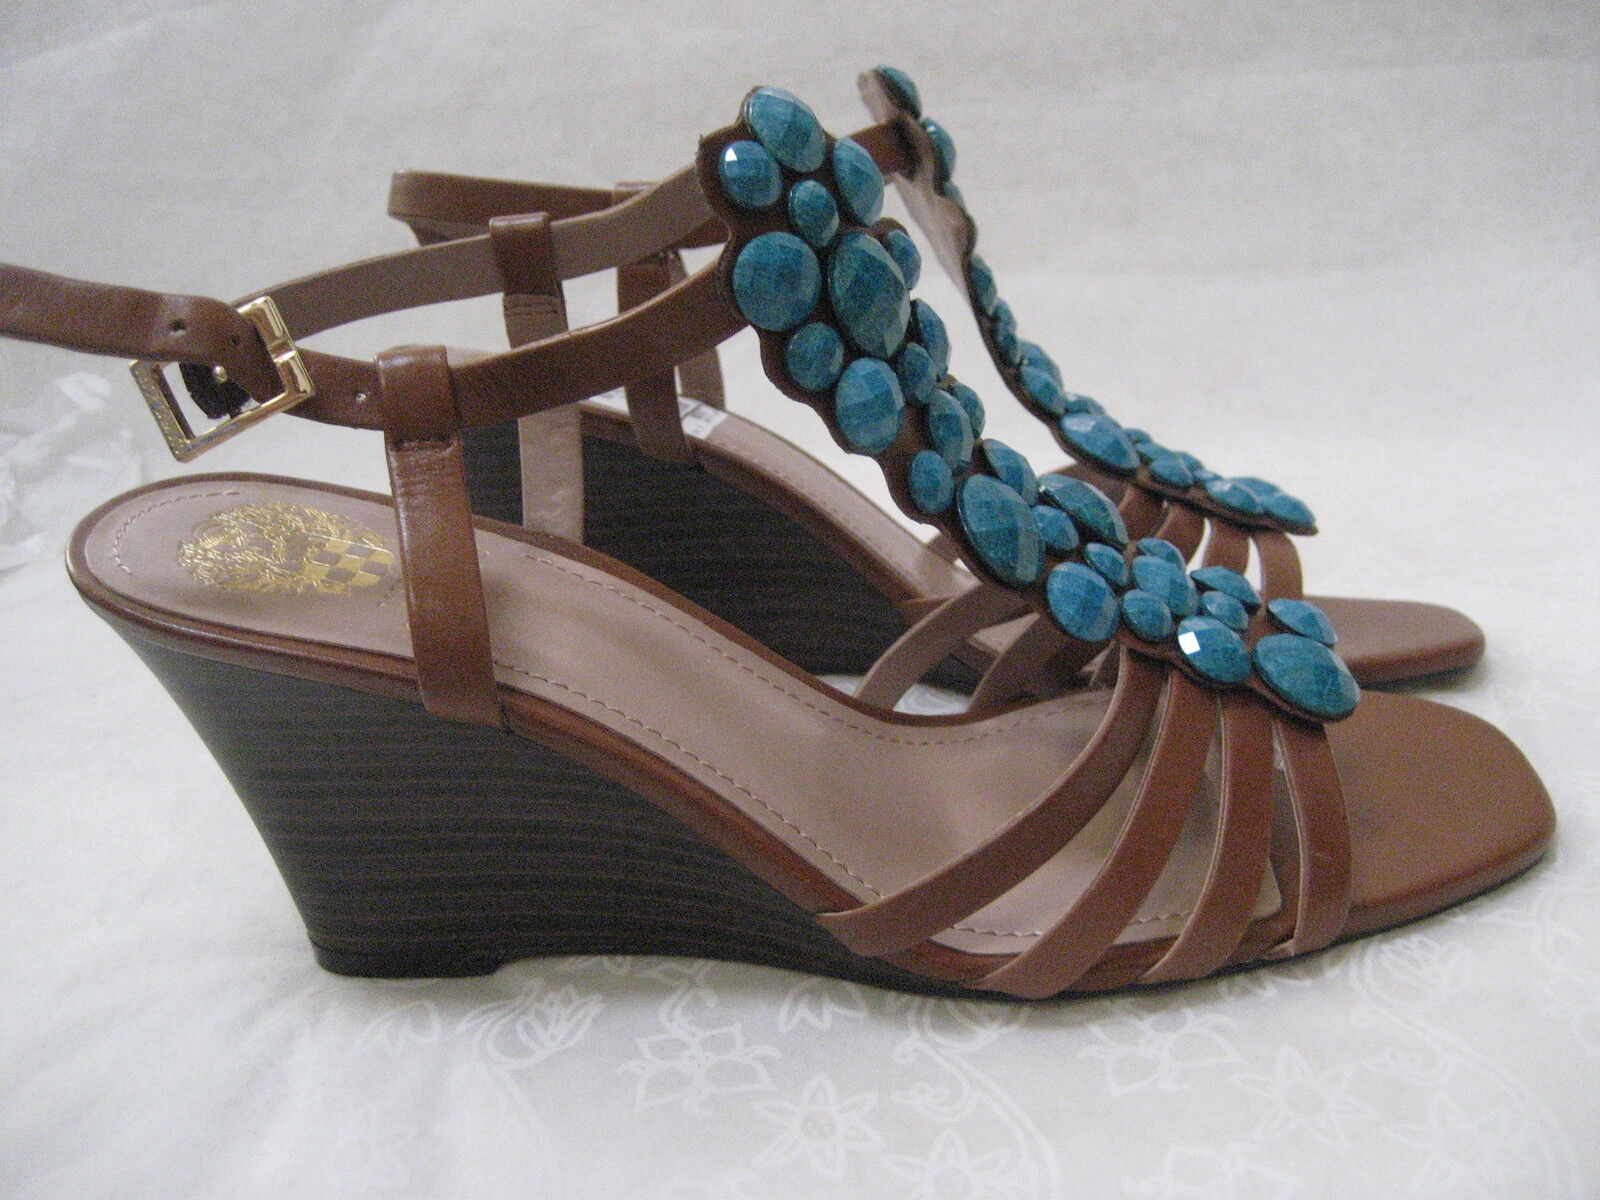 79 VINCE CAMUTO LEATHER BROWN/TURQUOISE JEWELED WEDGE Schuhe SIZE 9 1/2 M- NEU